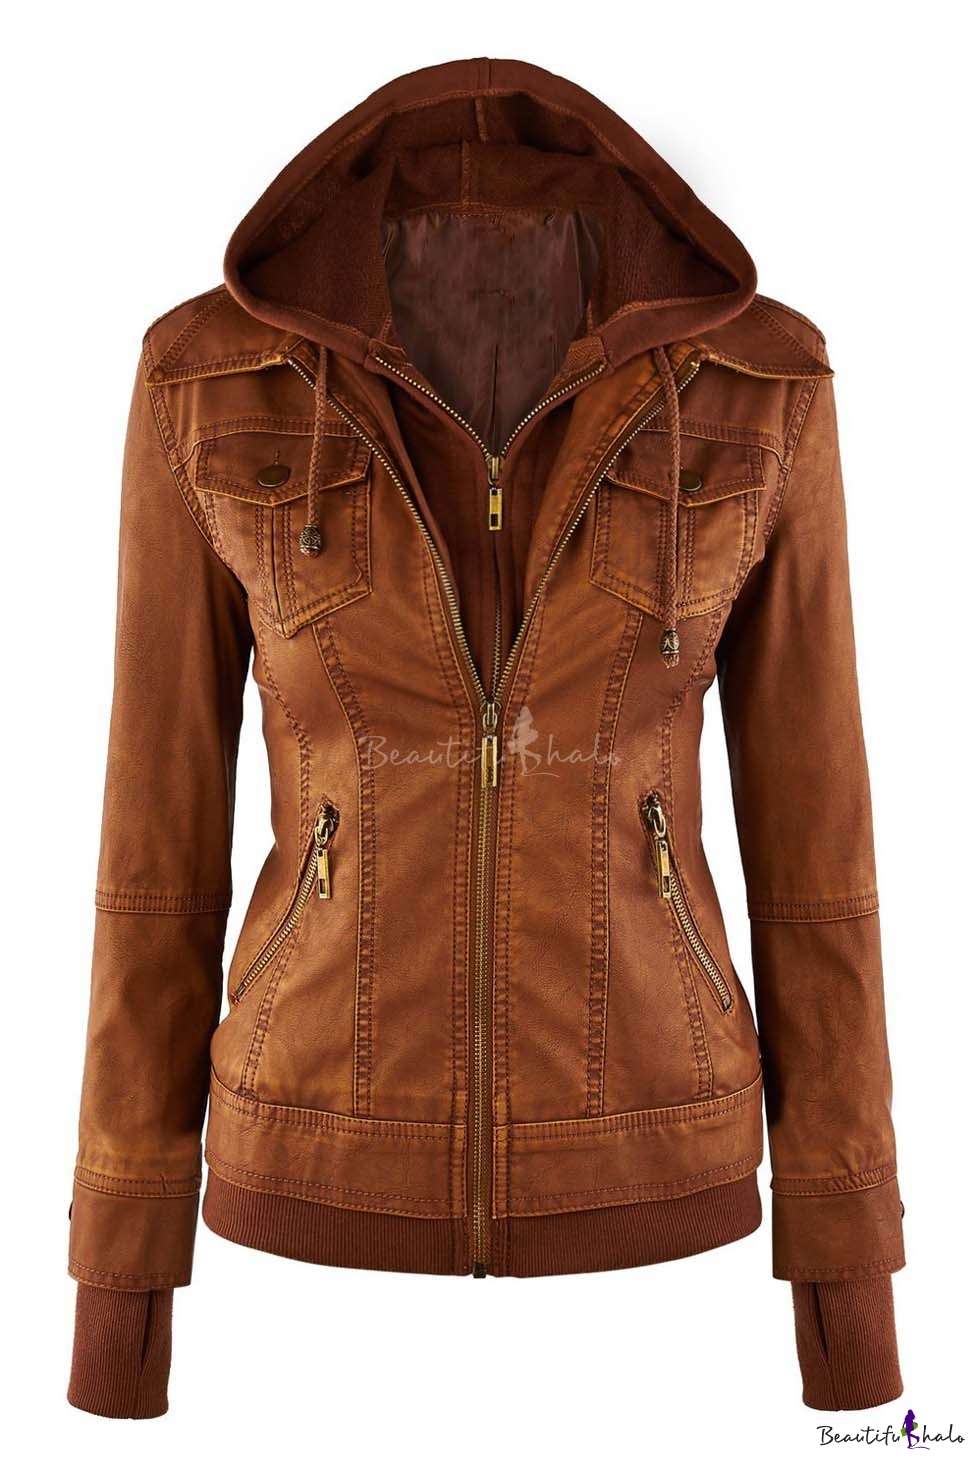 Find great deals on eBay for ladies leather jackets. Shop with confidence.